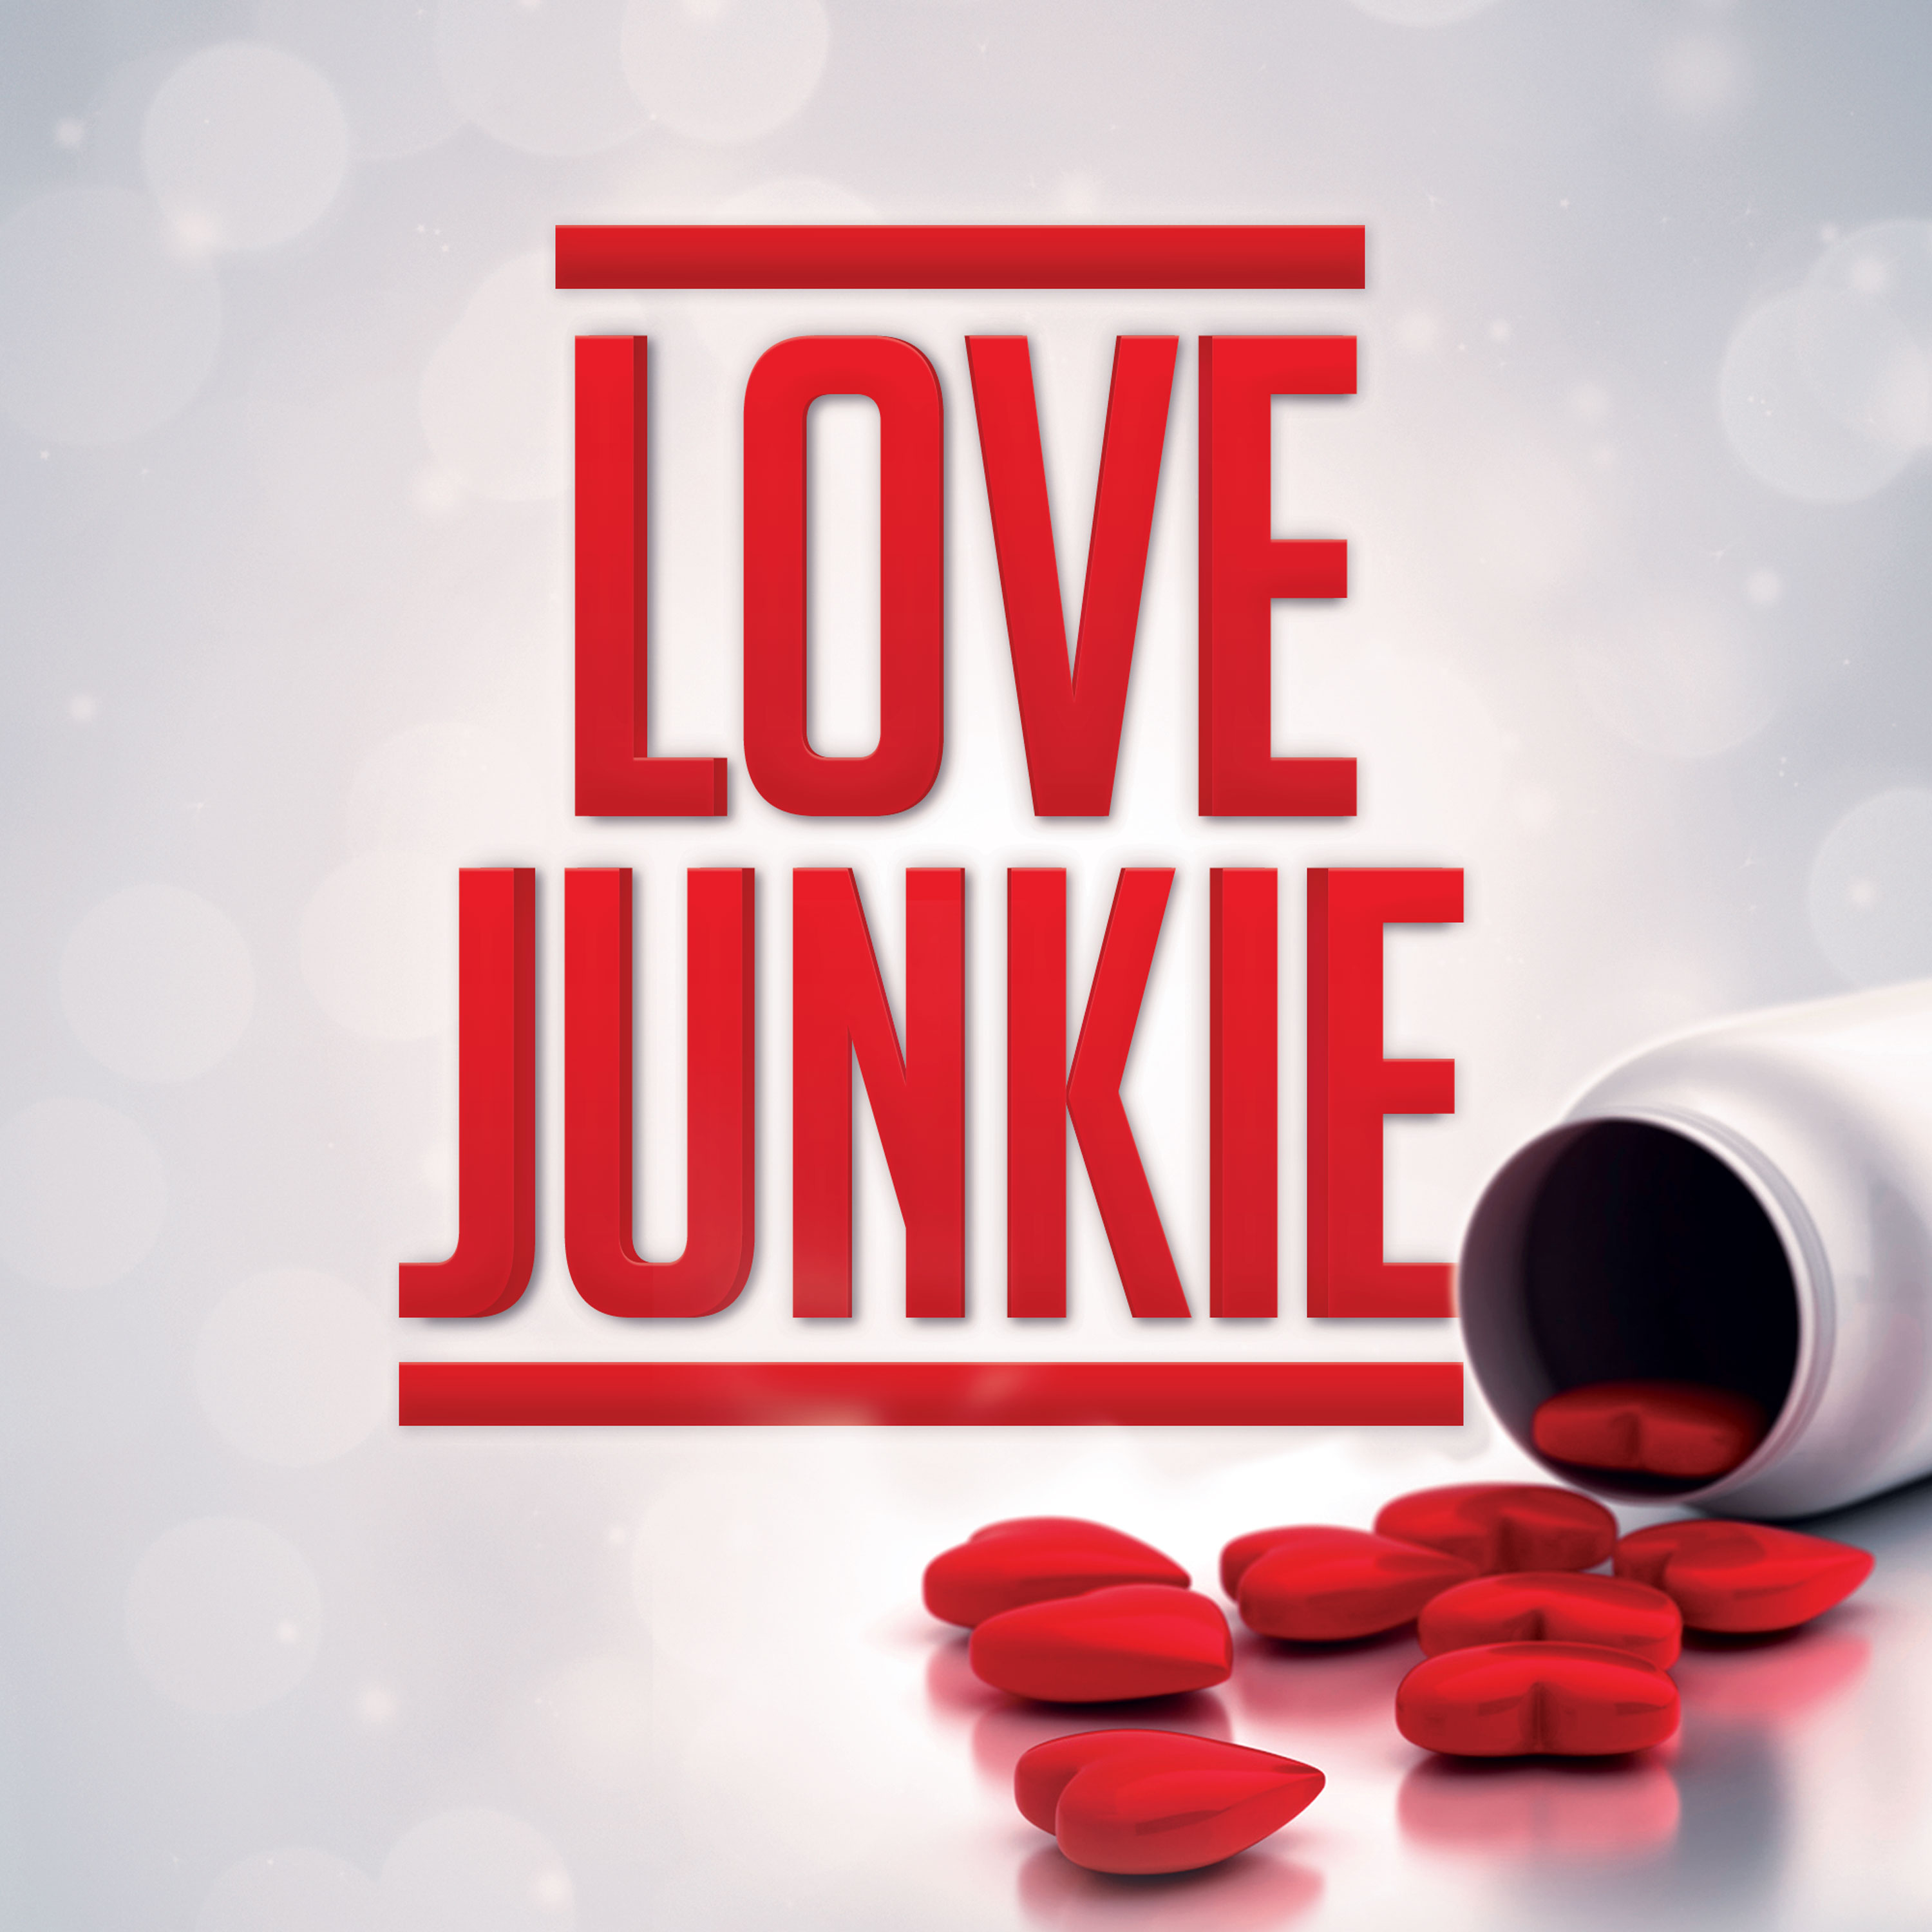 Love Junkie: Help for the Relationship Obsessed, Love Addicted, & Codependent - Episode #34: Healing from Childhood Emotional Neglect f/ Nina Keeler